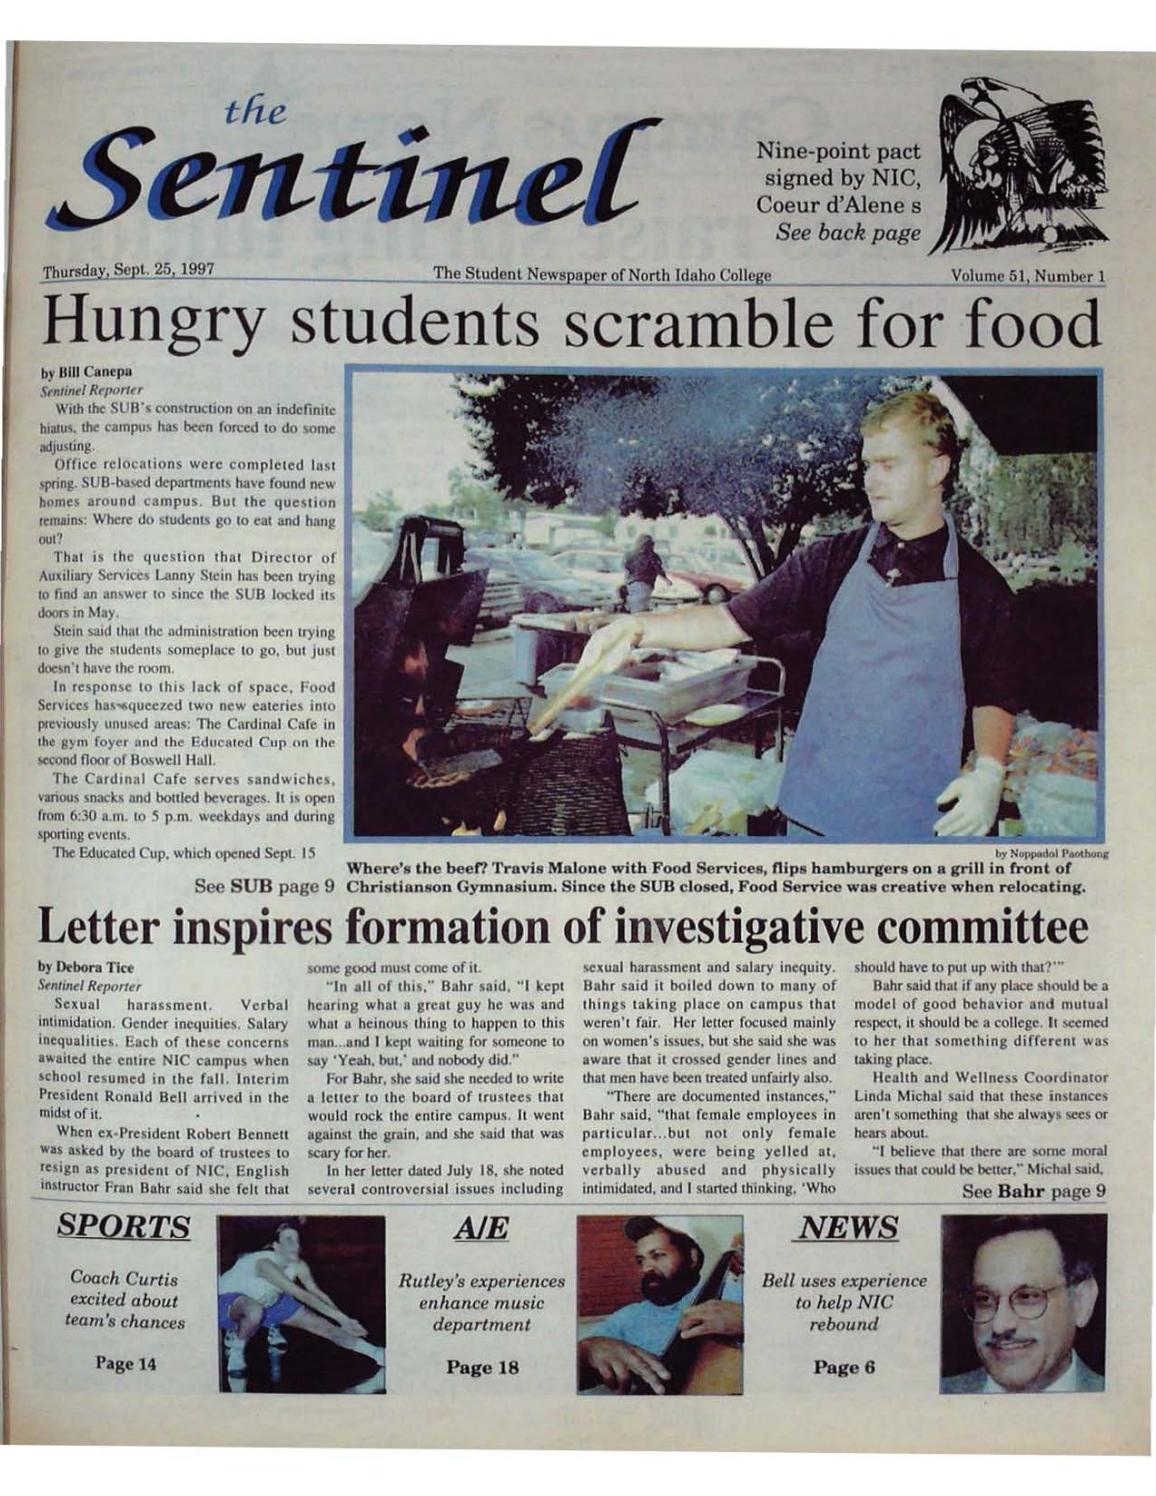 The North Idaho College Sentinel Vol 51